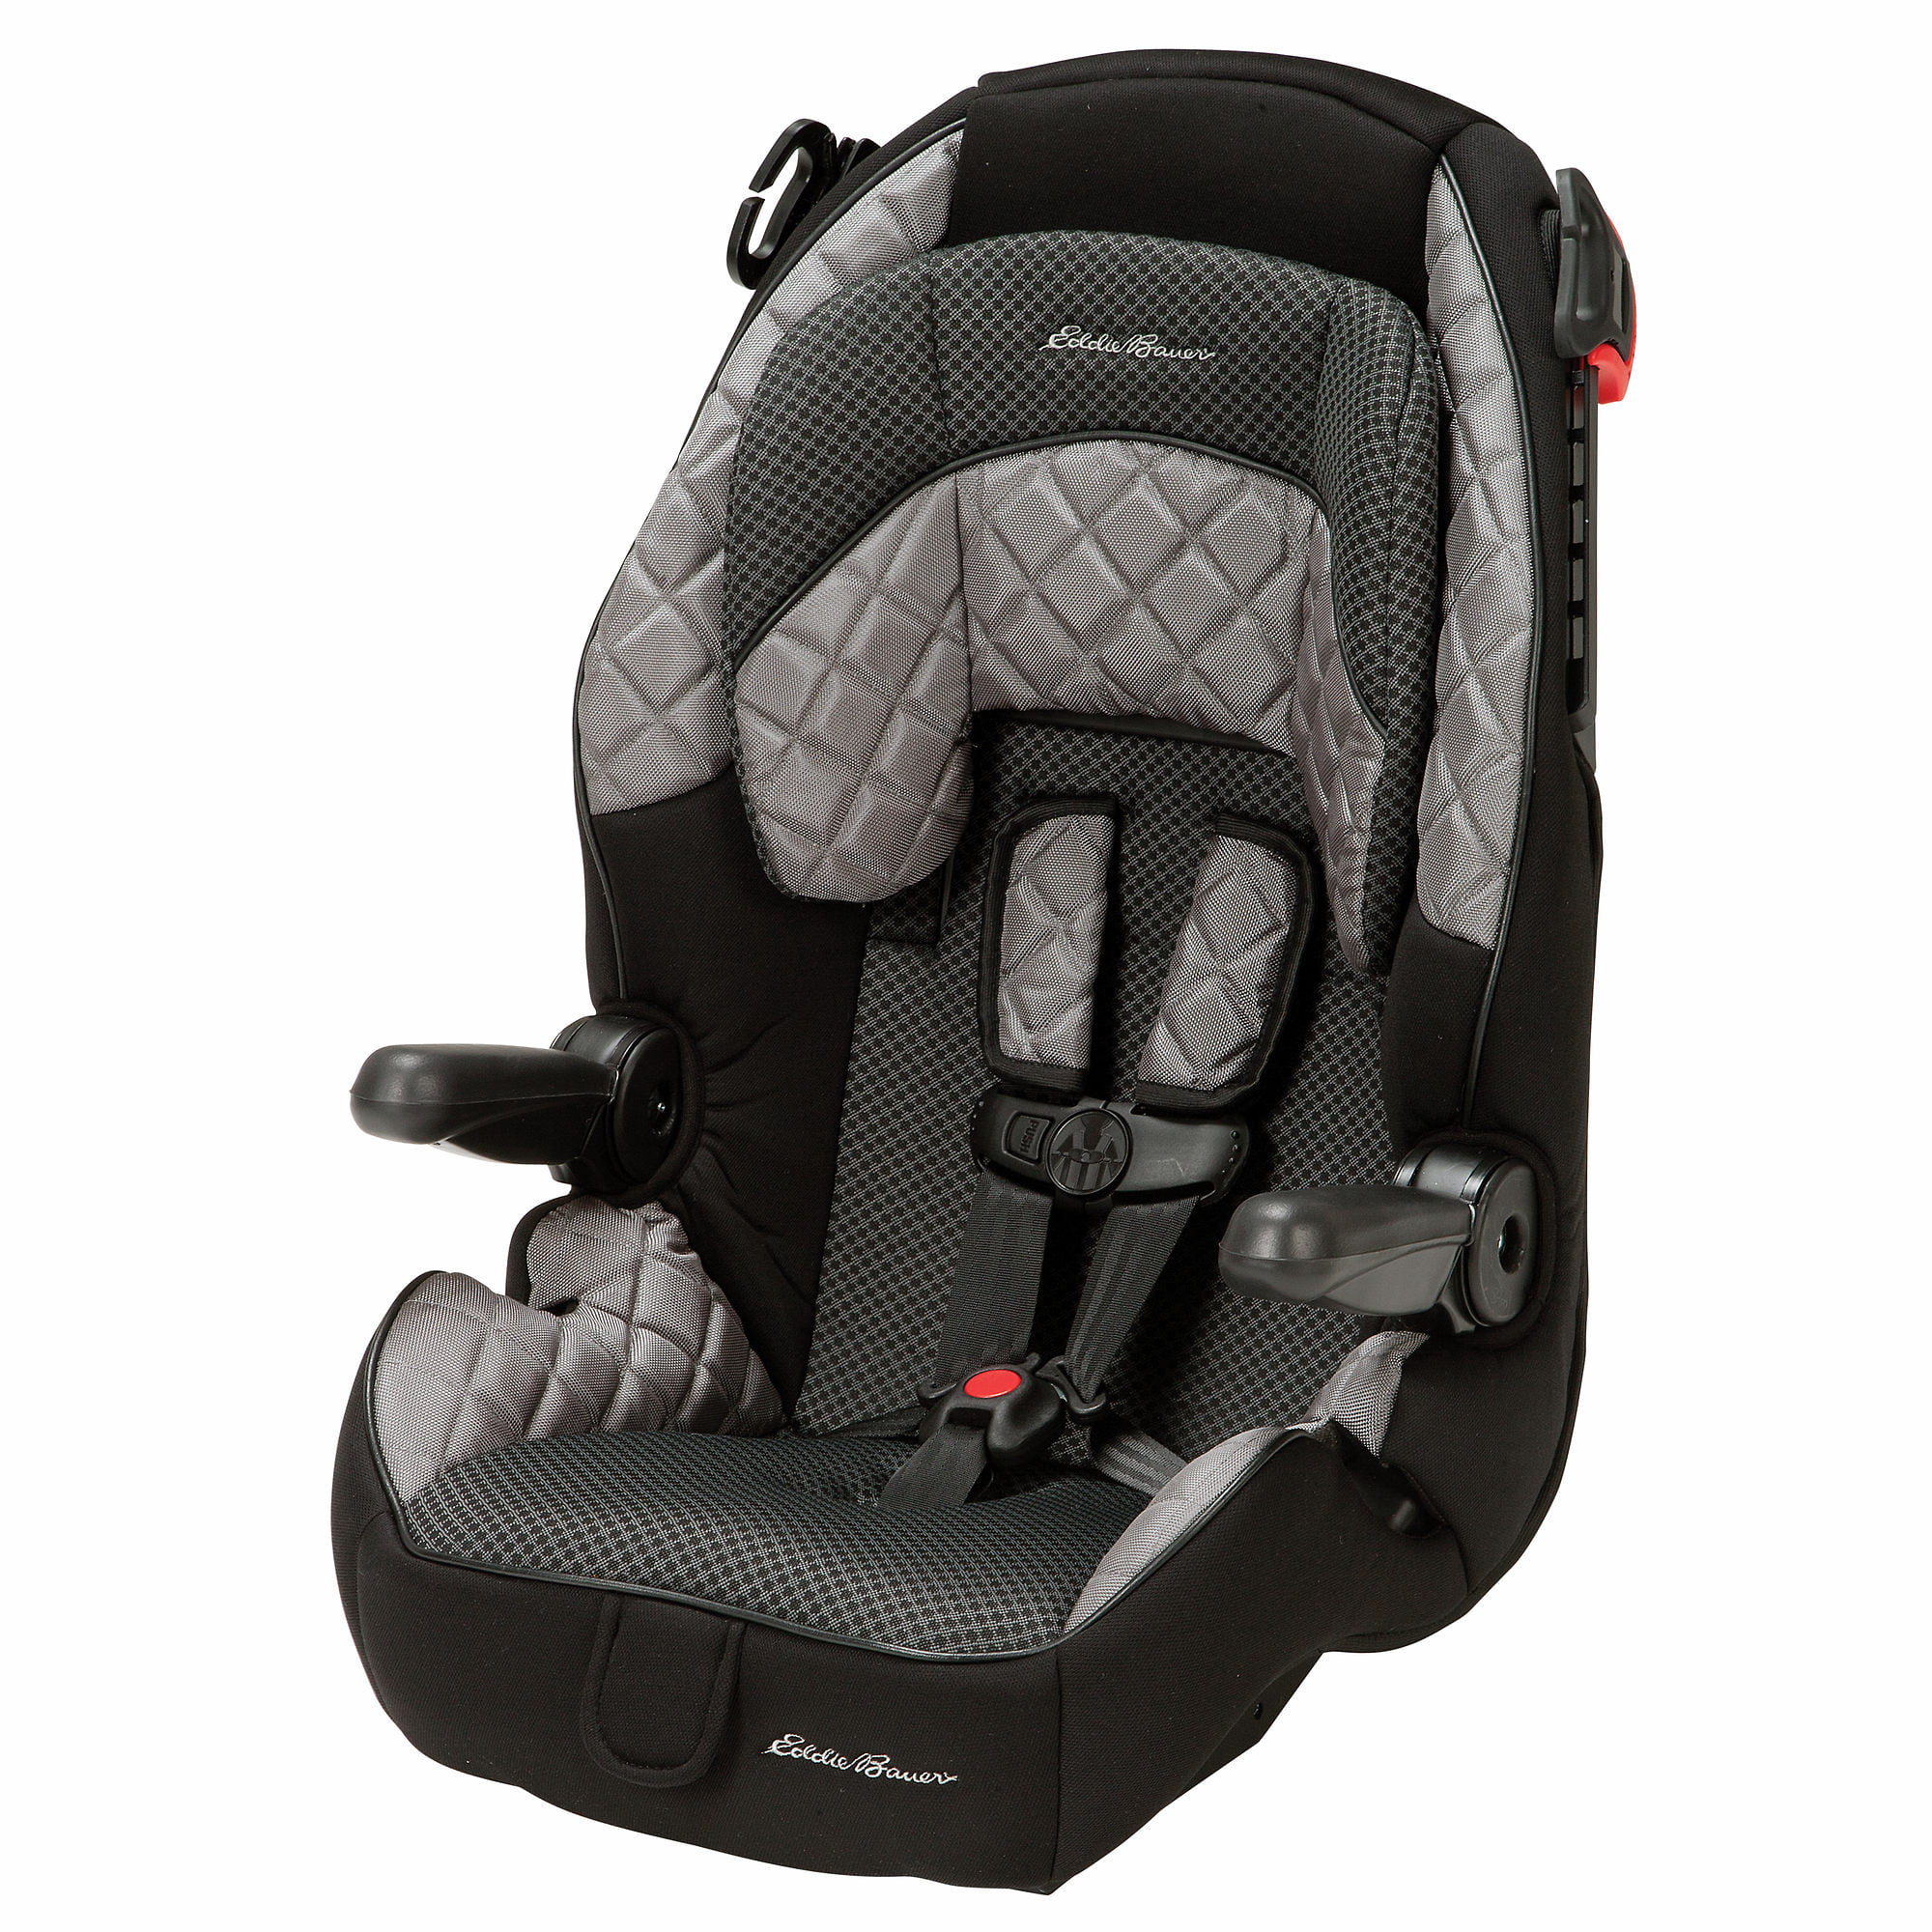 Product Of Eddie Bauer Deluxe Harness Booster Car Seat Baby Seats